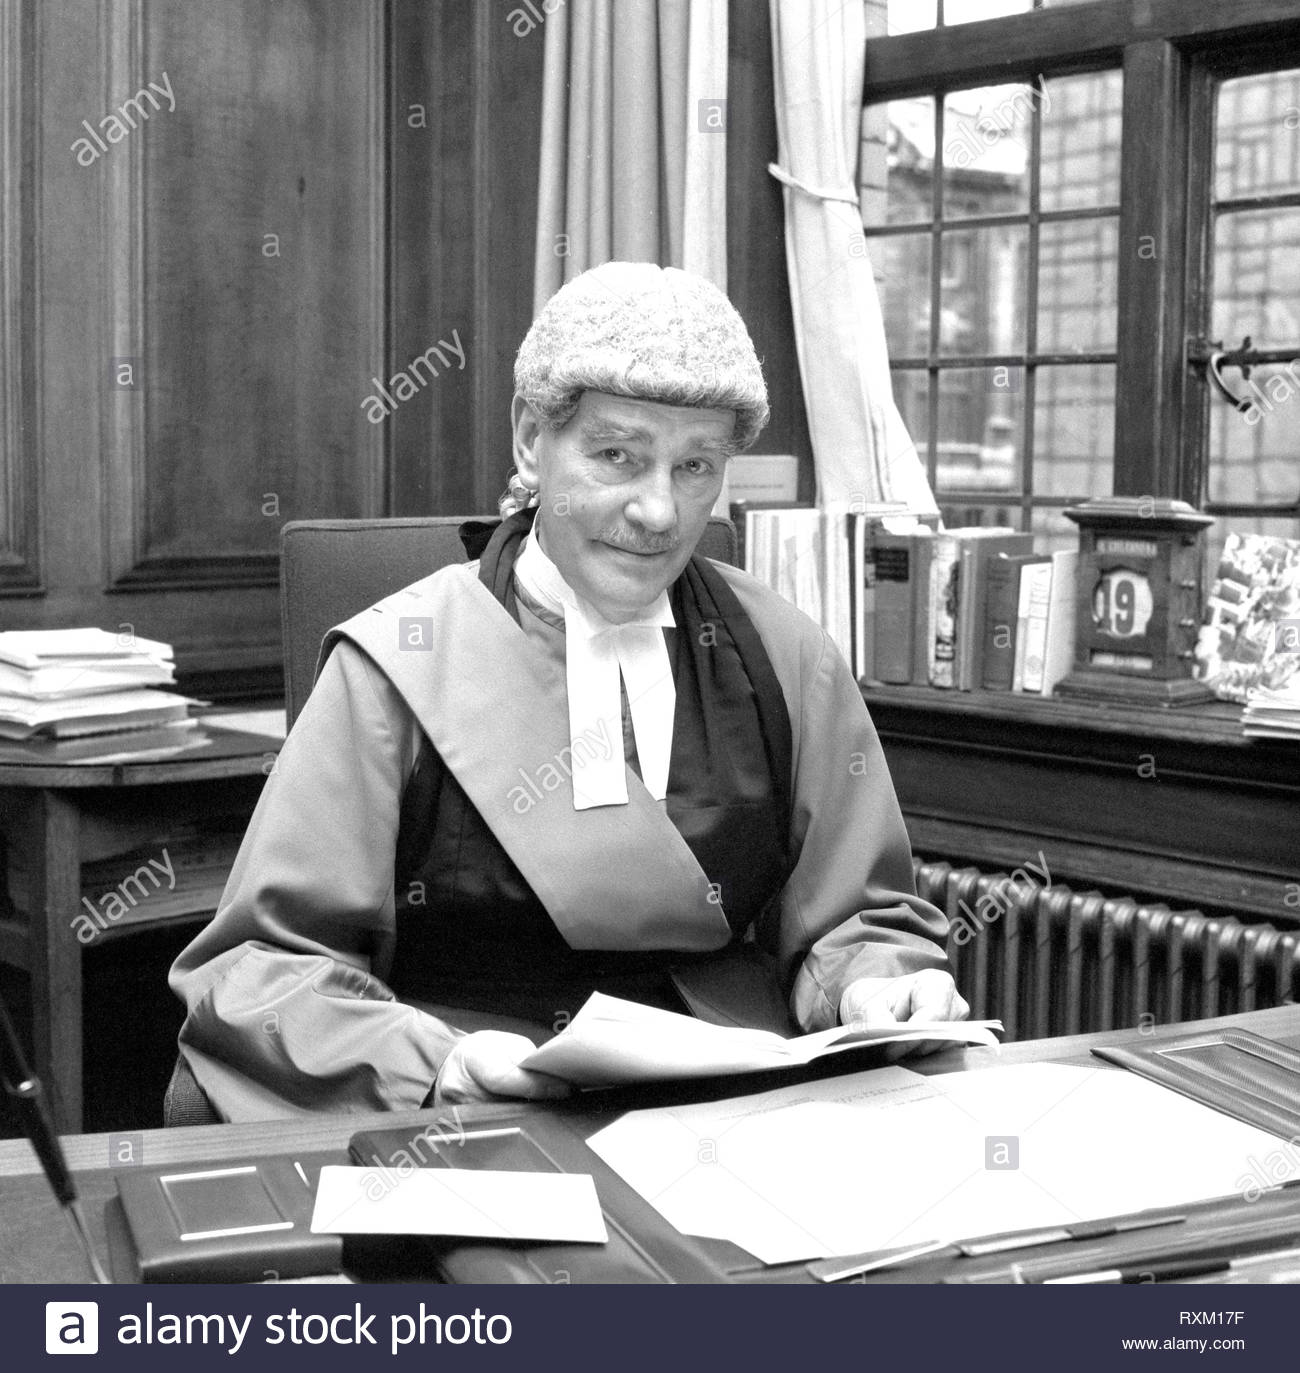 File photo dated 19/4/1972 of Lord Widgery, the Lord Chief Justice, in his room at the Old Baily as he looks through his report on the 'Bloody Sunday' shootings in Londonderry. - Stock Image